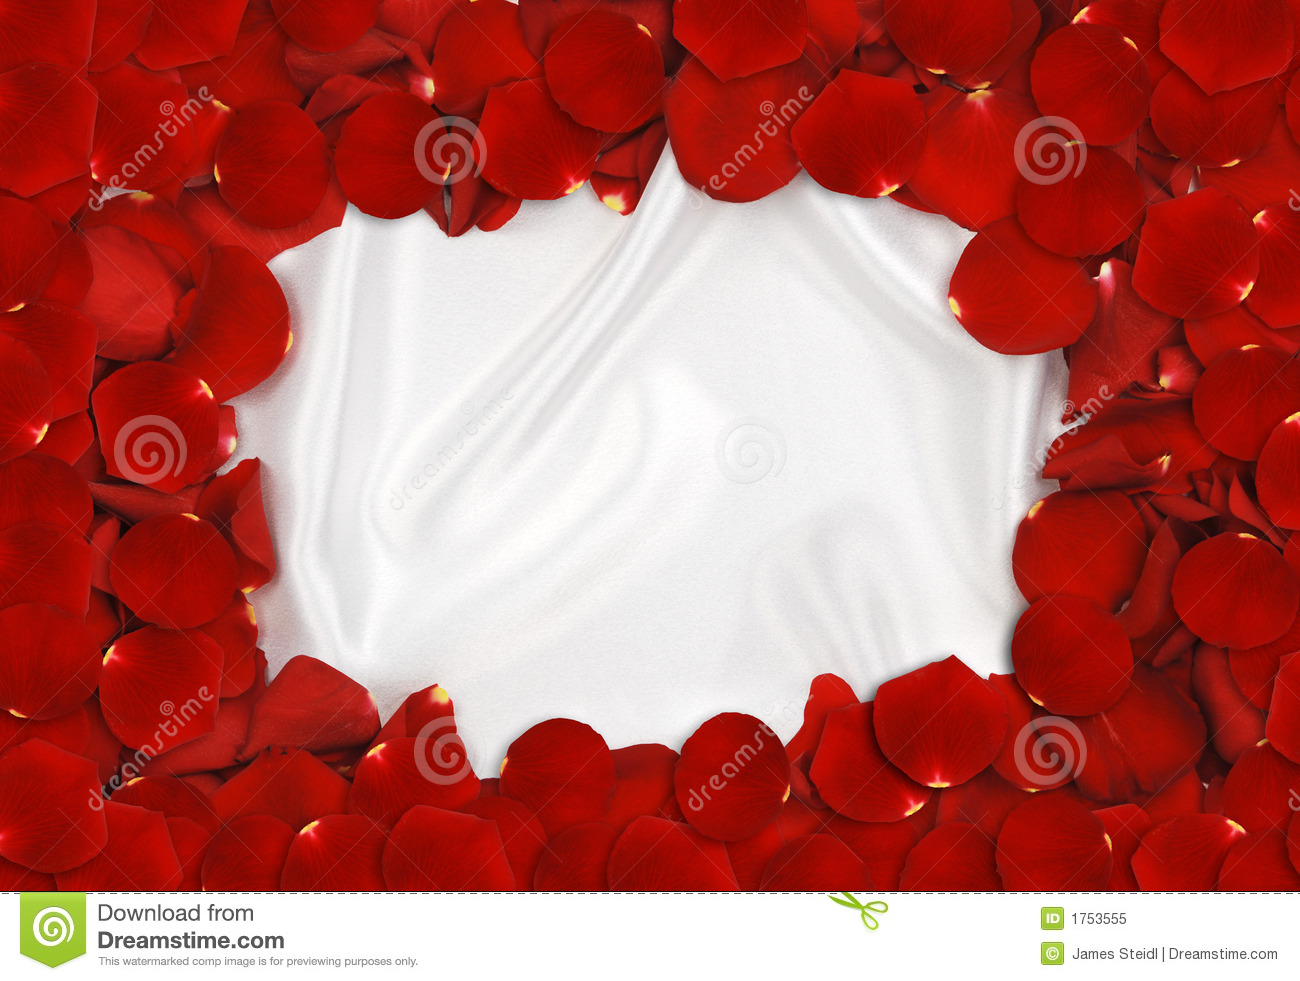 Rred rose petals forming a frame around white satin fabric.